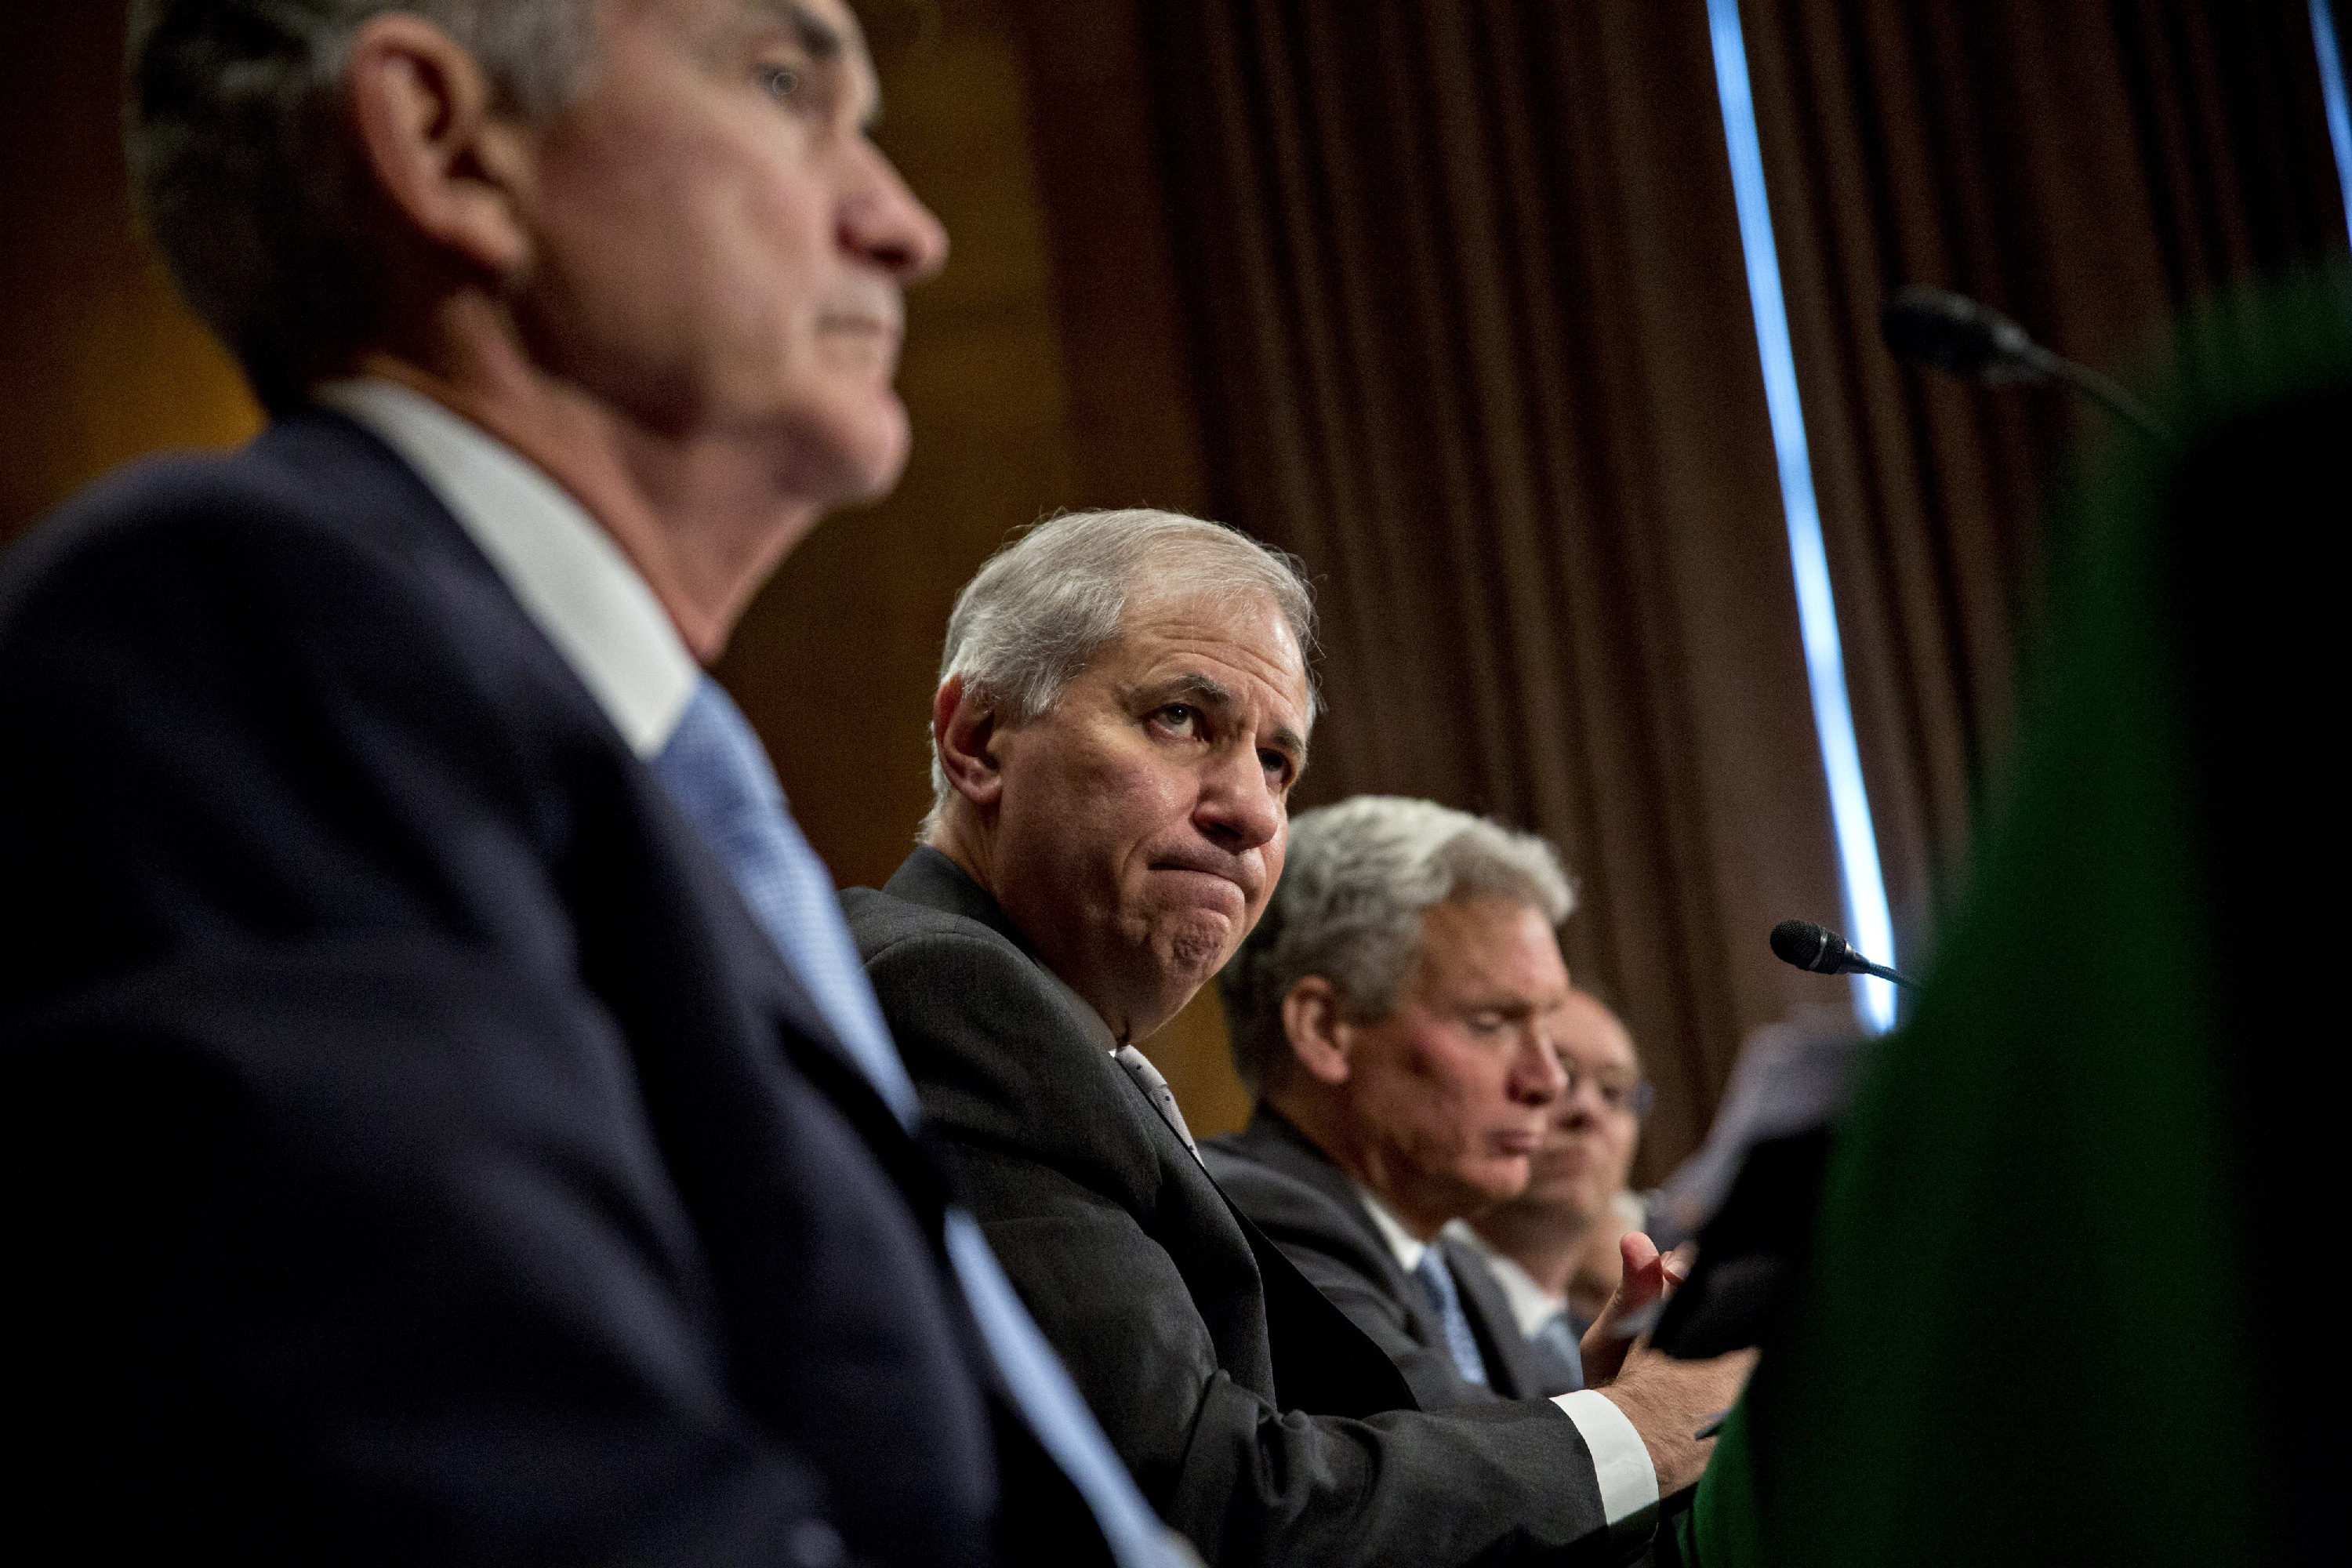 Martin Gruenberg, chairman of the Federal Deposit Insurance Corp. (FDIC), center, and Jerome Powell, governor of the U.S. Federal Reserve, left, listen during a Senate Banking Committee hearing in Washington, D.C., U.S., on Thursday, June 22, 2017. Top U.S. banking regulators are sprinting to ease the Volcker Rule, stress tests and other constraints on Wall Street after the Trump administration issued a long list of proposals last week for rolling back post-crisis financial rules. Photographer: Andrew Harrer/Bloomberg via Getty Images